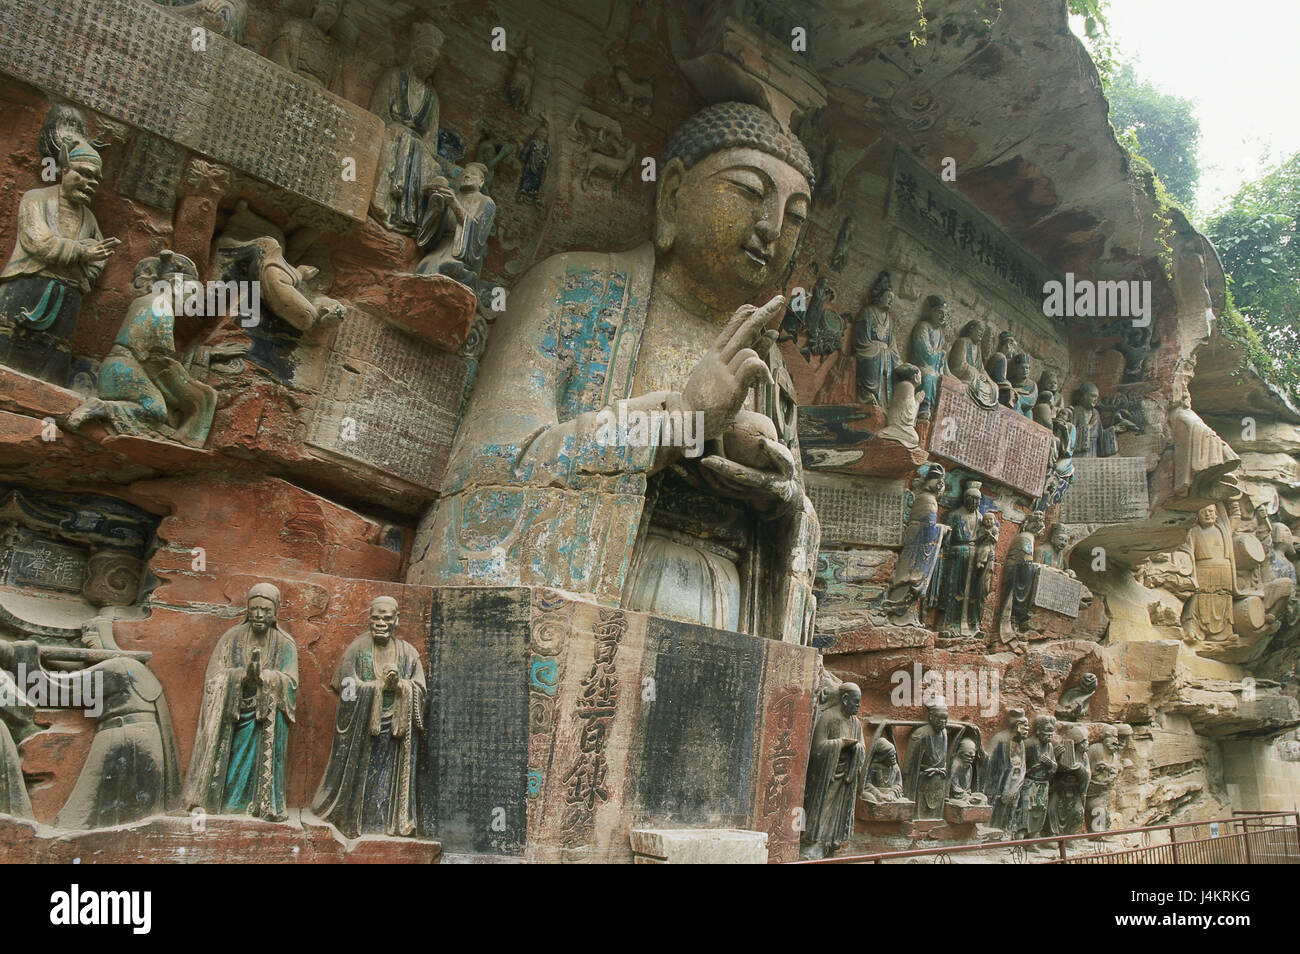 China, Chongqing province, In addition, Buddhist stone sculptures, Buddha Asia, Eastern Asia, place of interest, - Stock Image